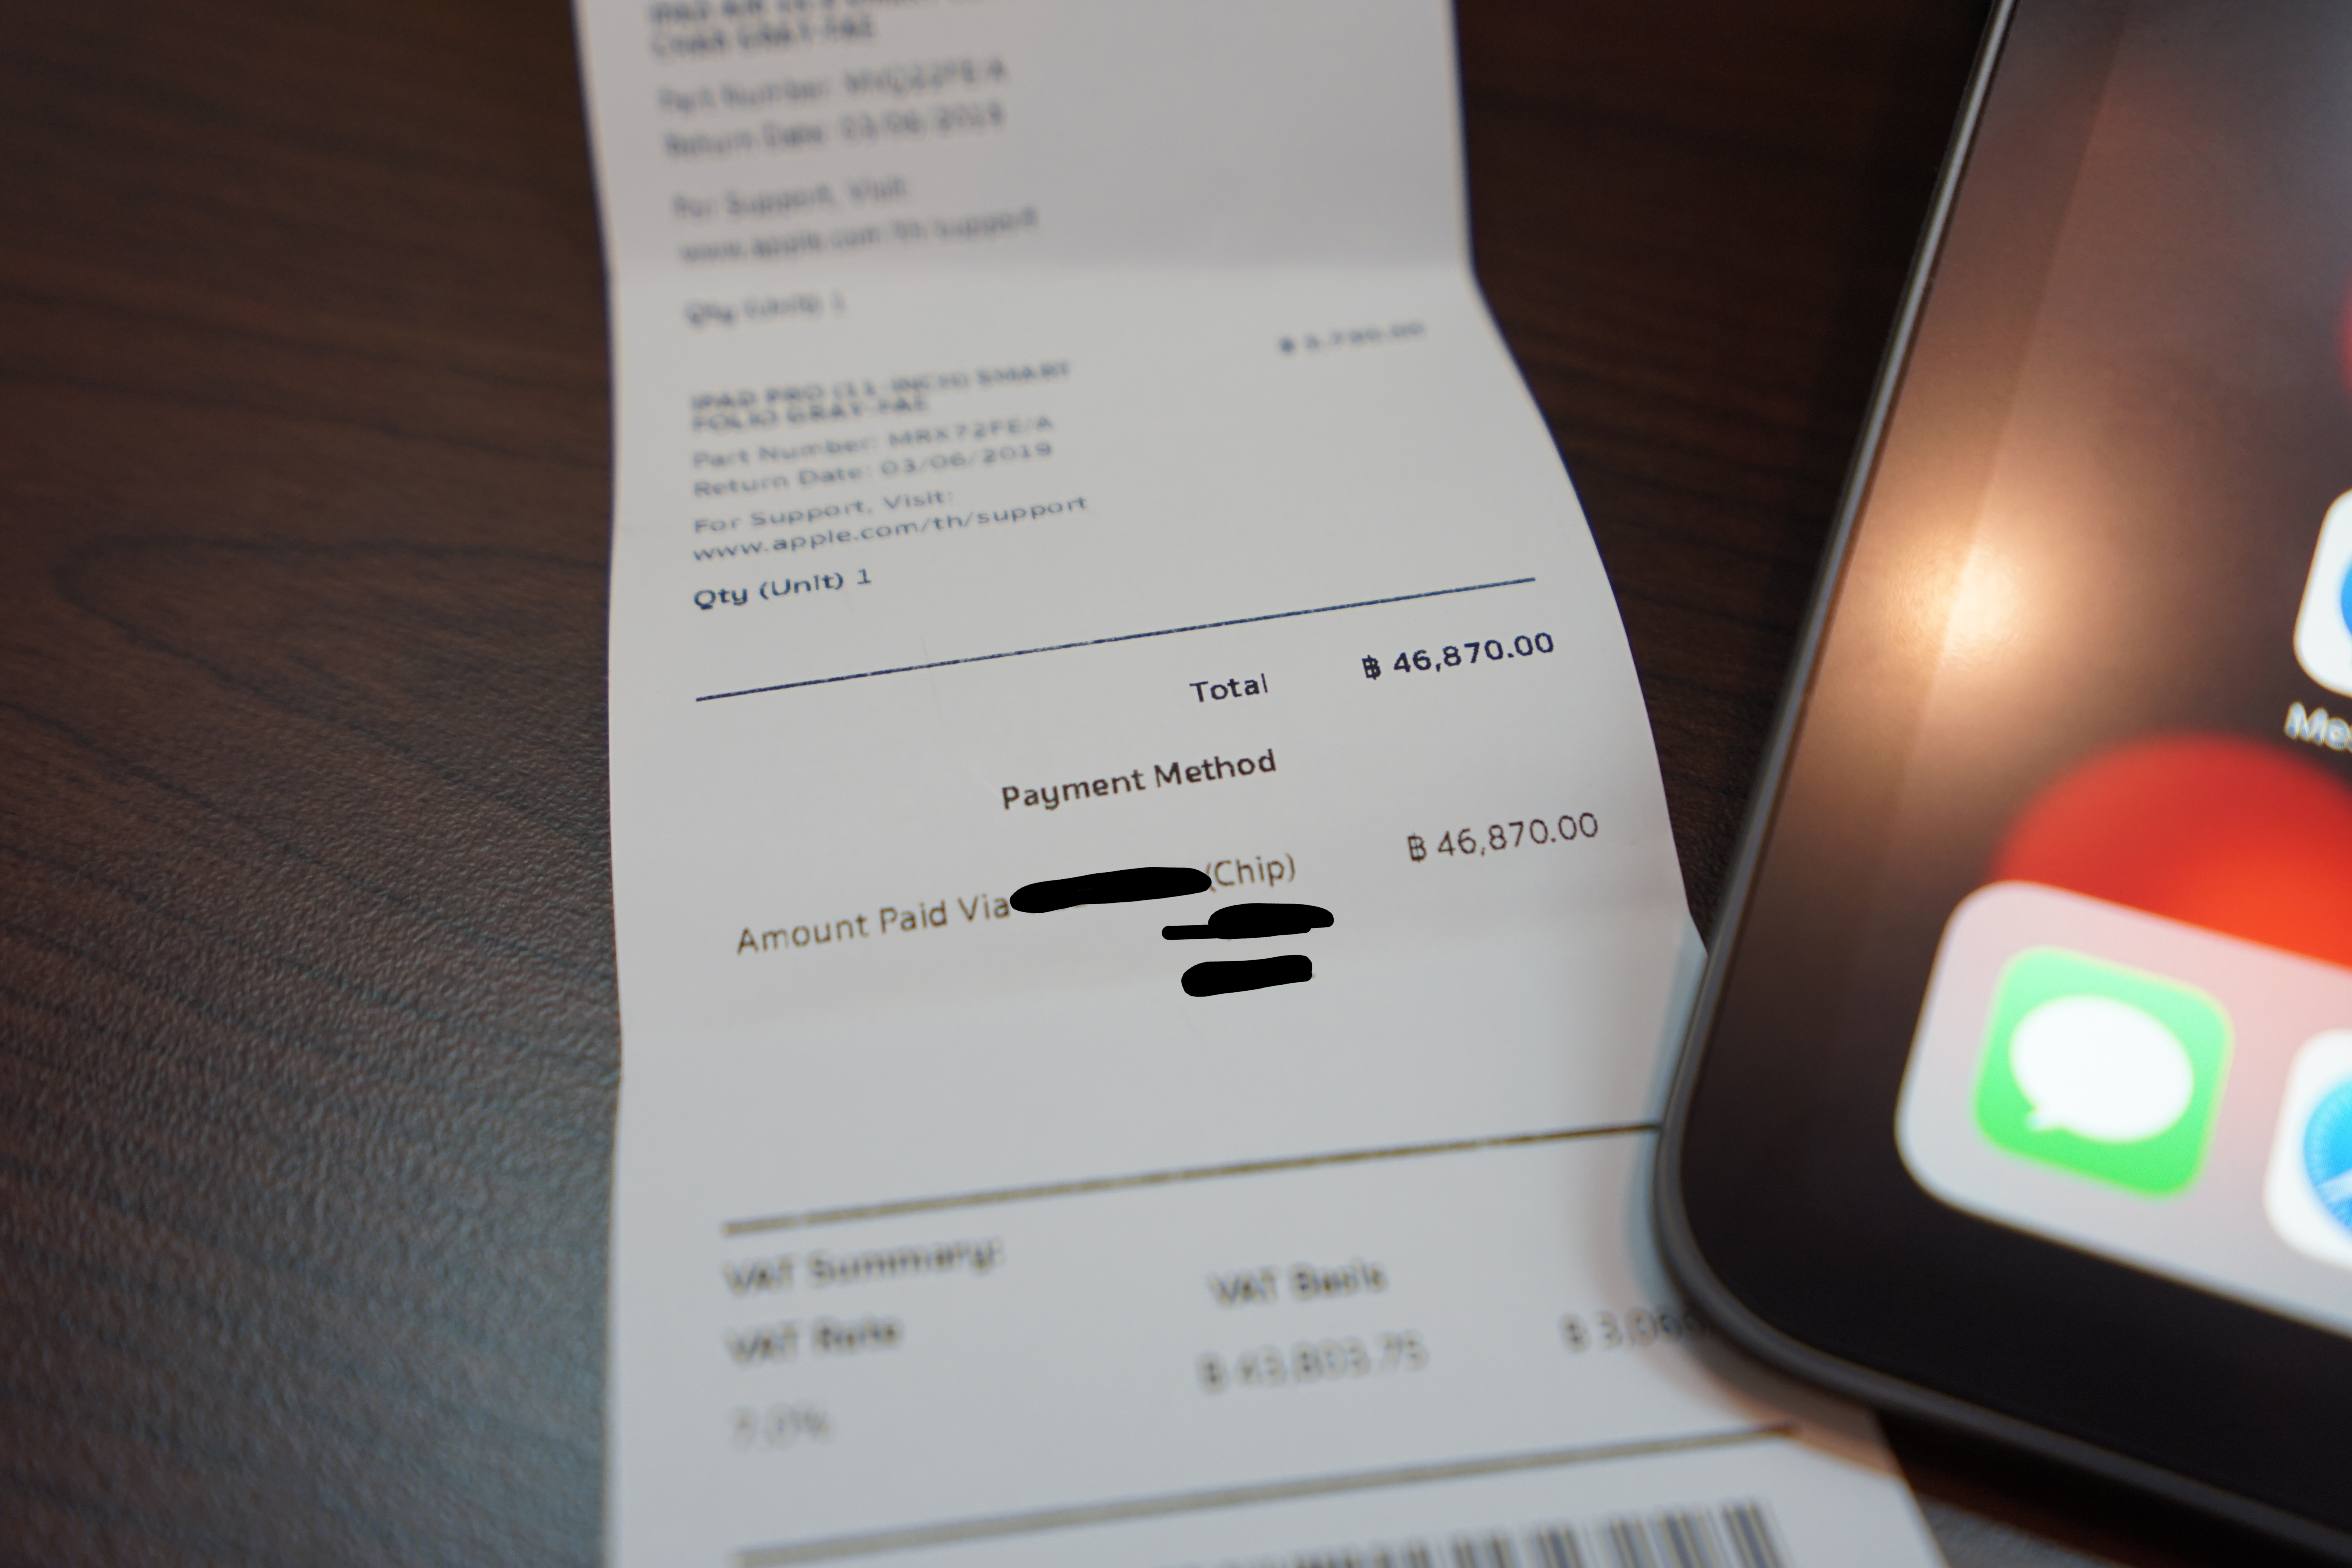 Receipt from Apple Store